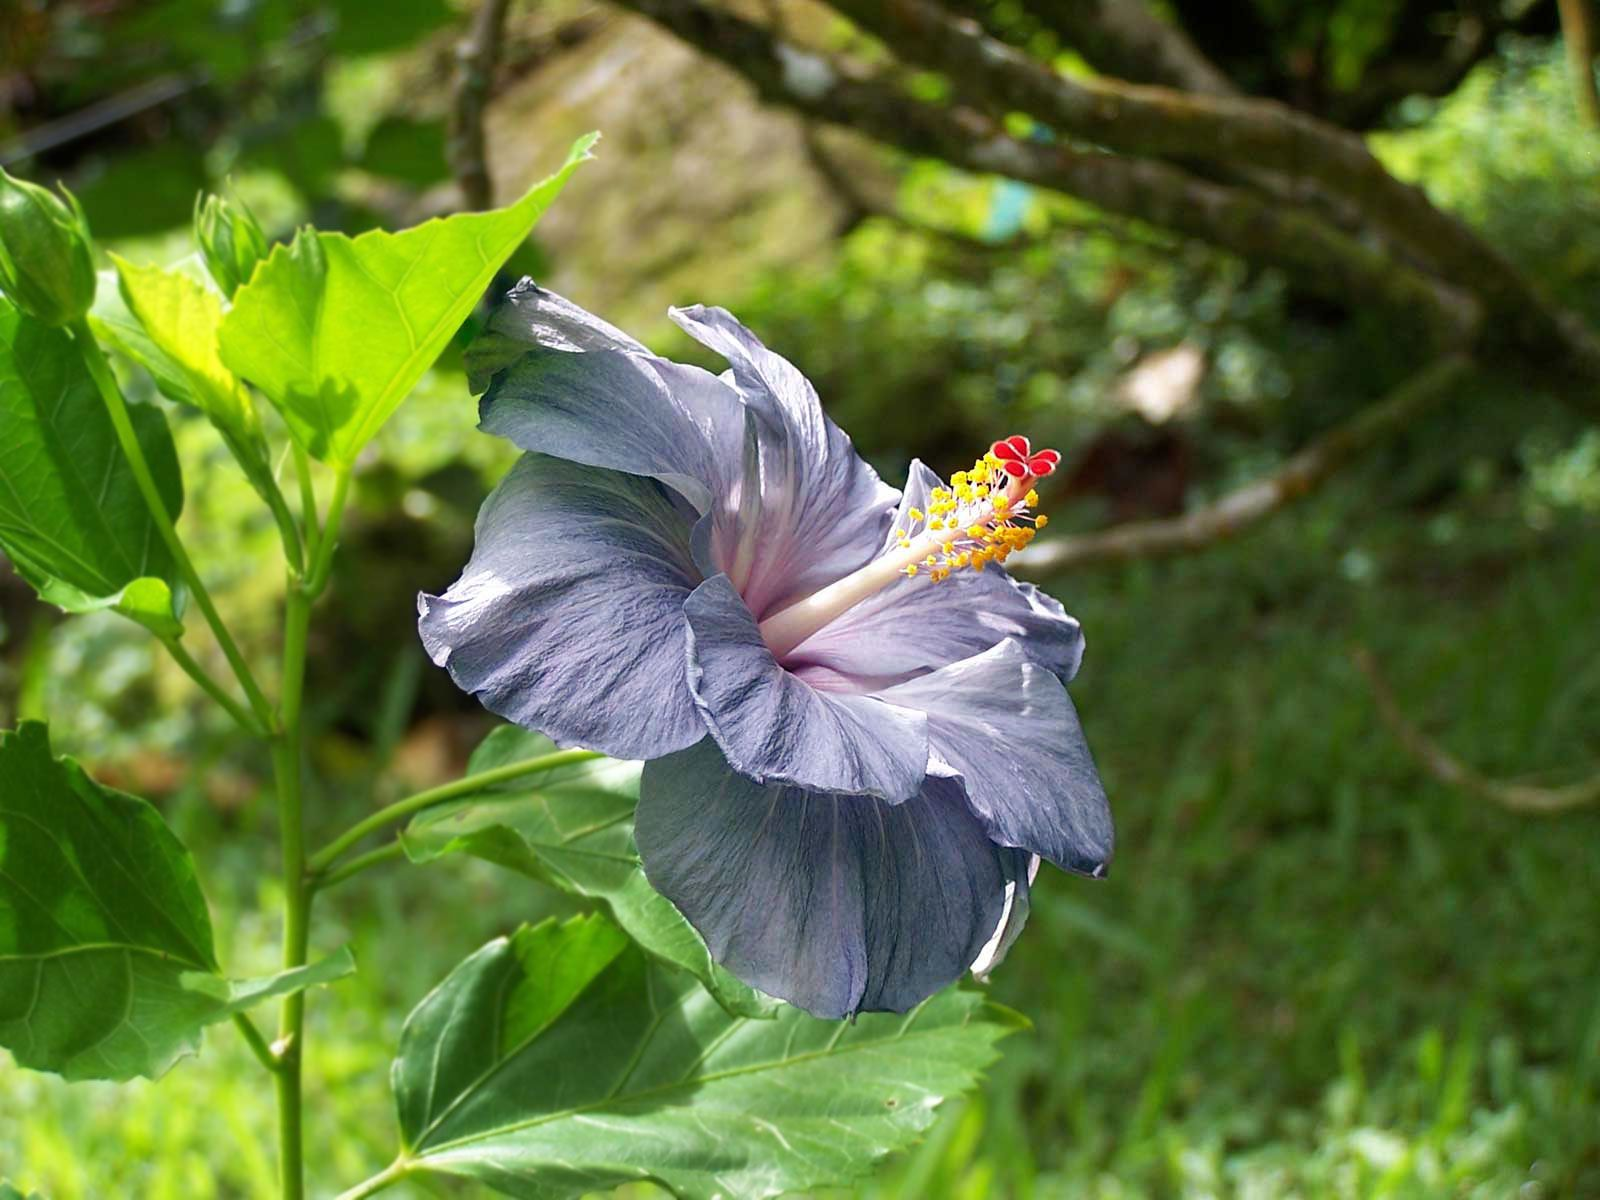 Beautiful and unique purple Hawaiian hibiscus. This picture was taken on Hawaii's Big Island in the Hawaii Botanical Gardens near Hilo. What a gorgeous flower.